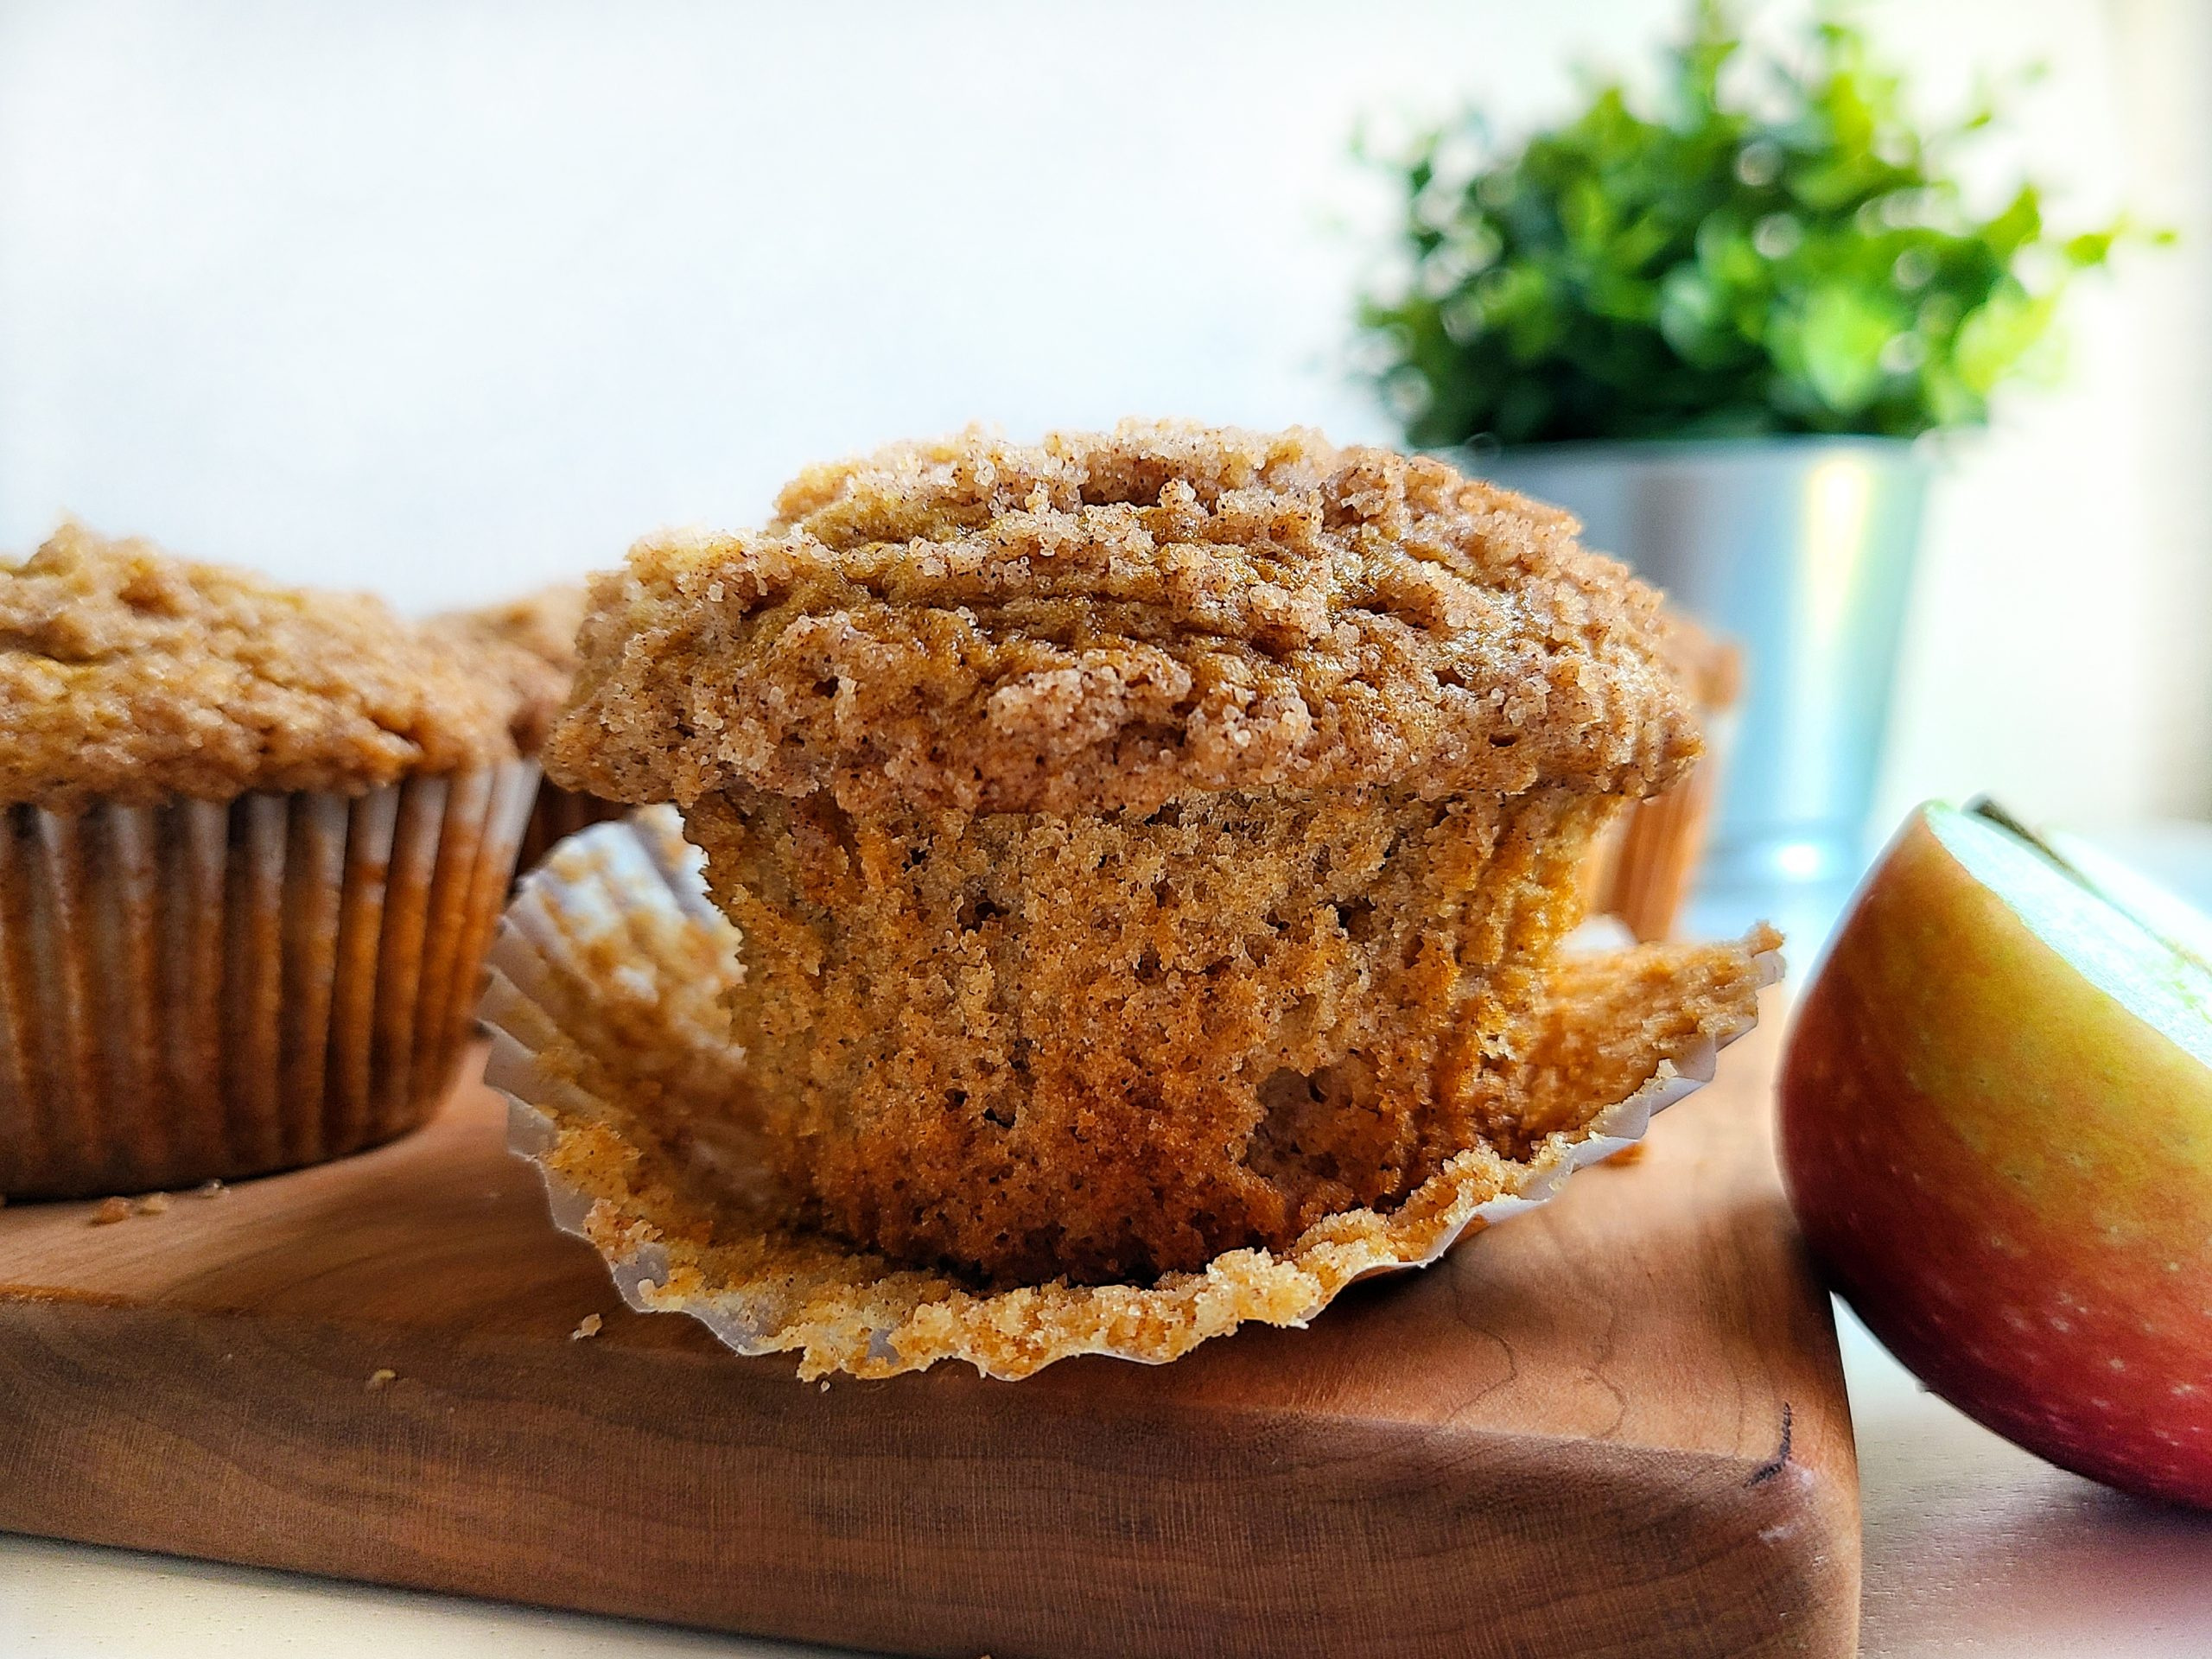 Apple Cinnamon Muffins with Cinnamon Streusel Topping